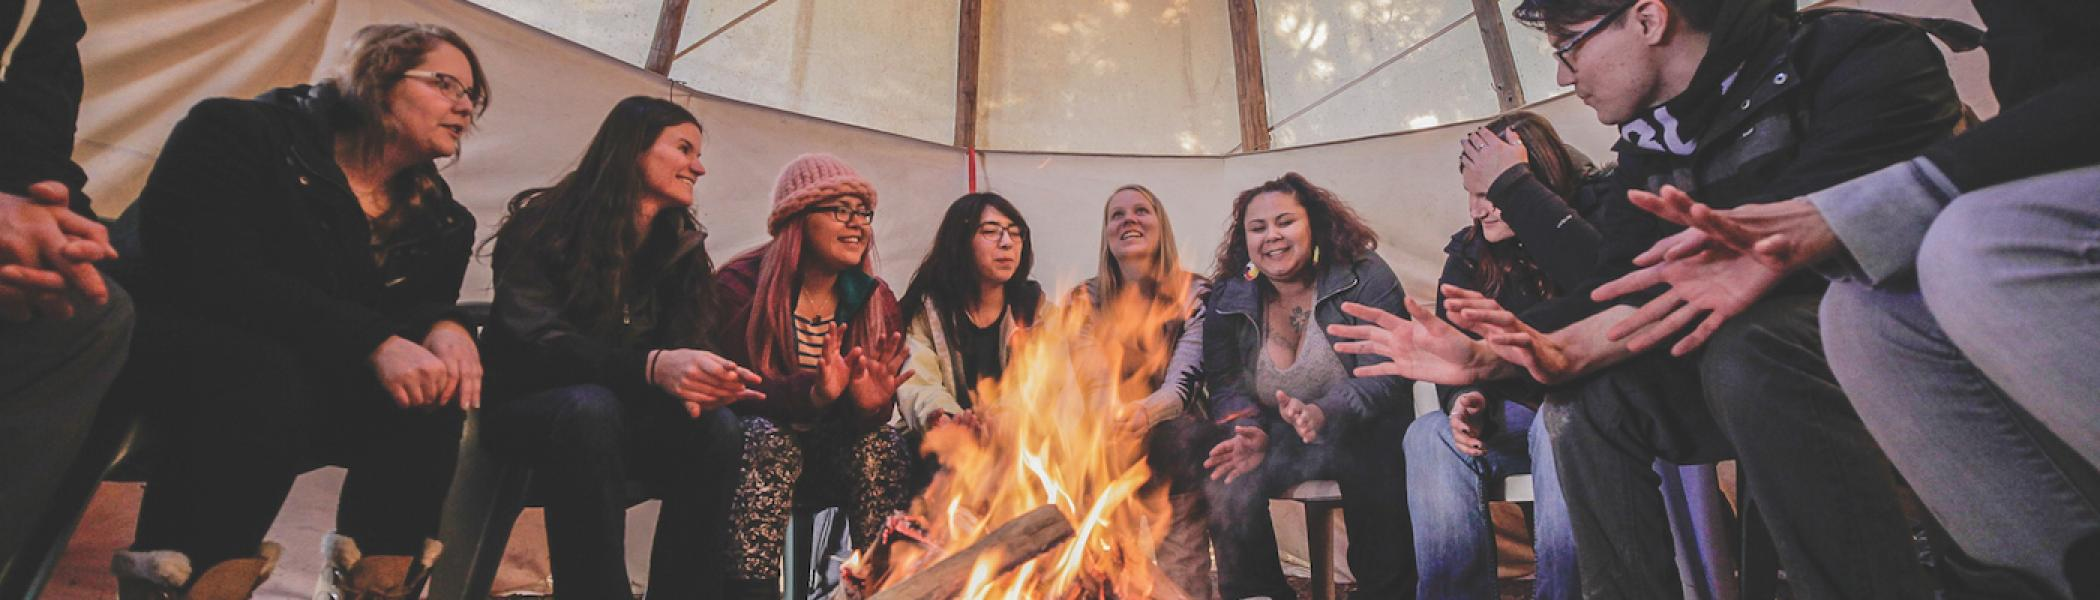 A group of girls sitting around a fire in a tipi at Trent